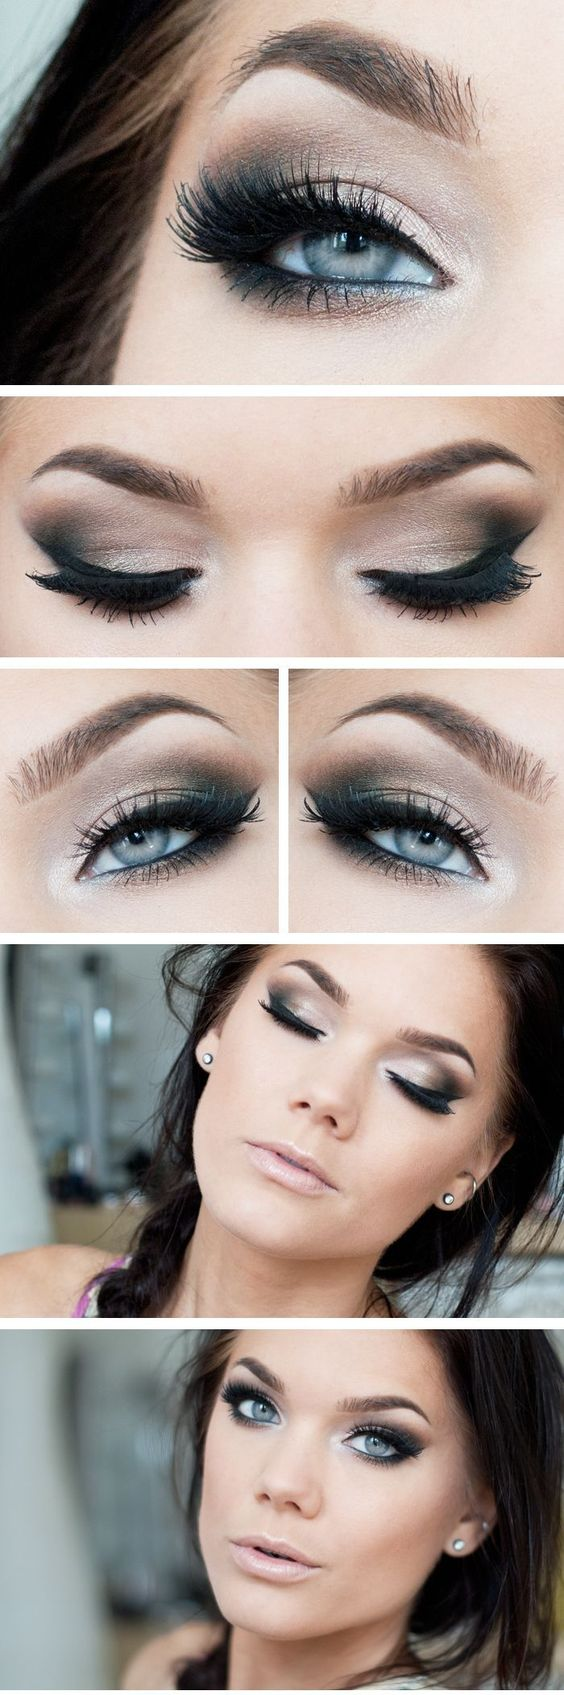 10 awesome eye makeup looks for blue eyes - pretty designs